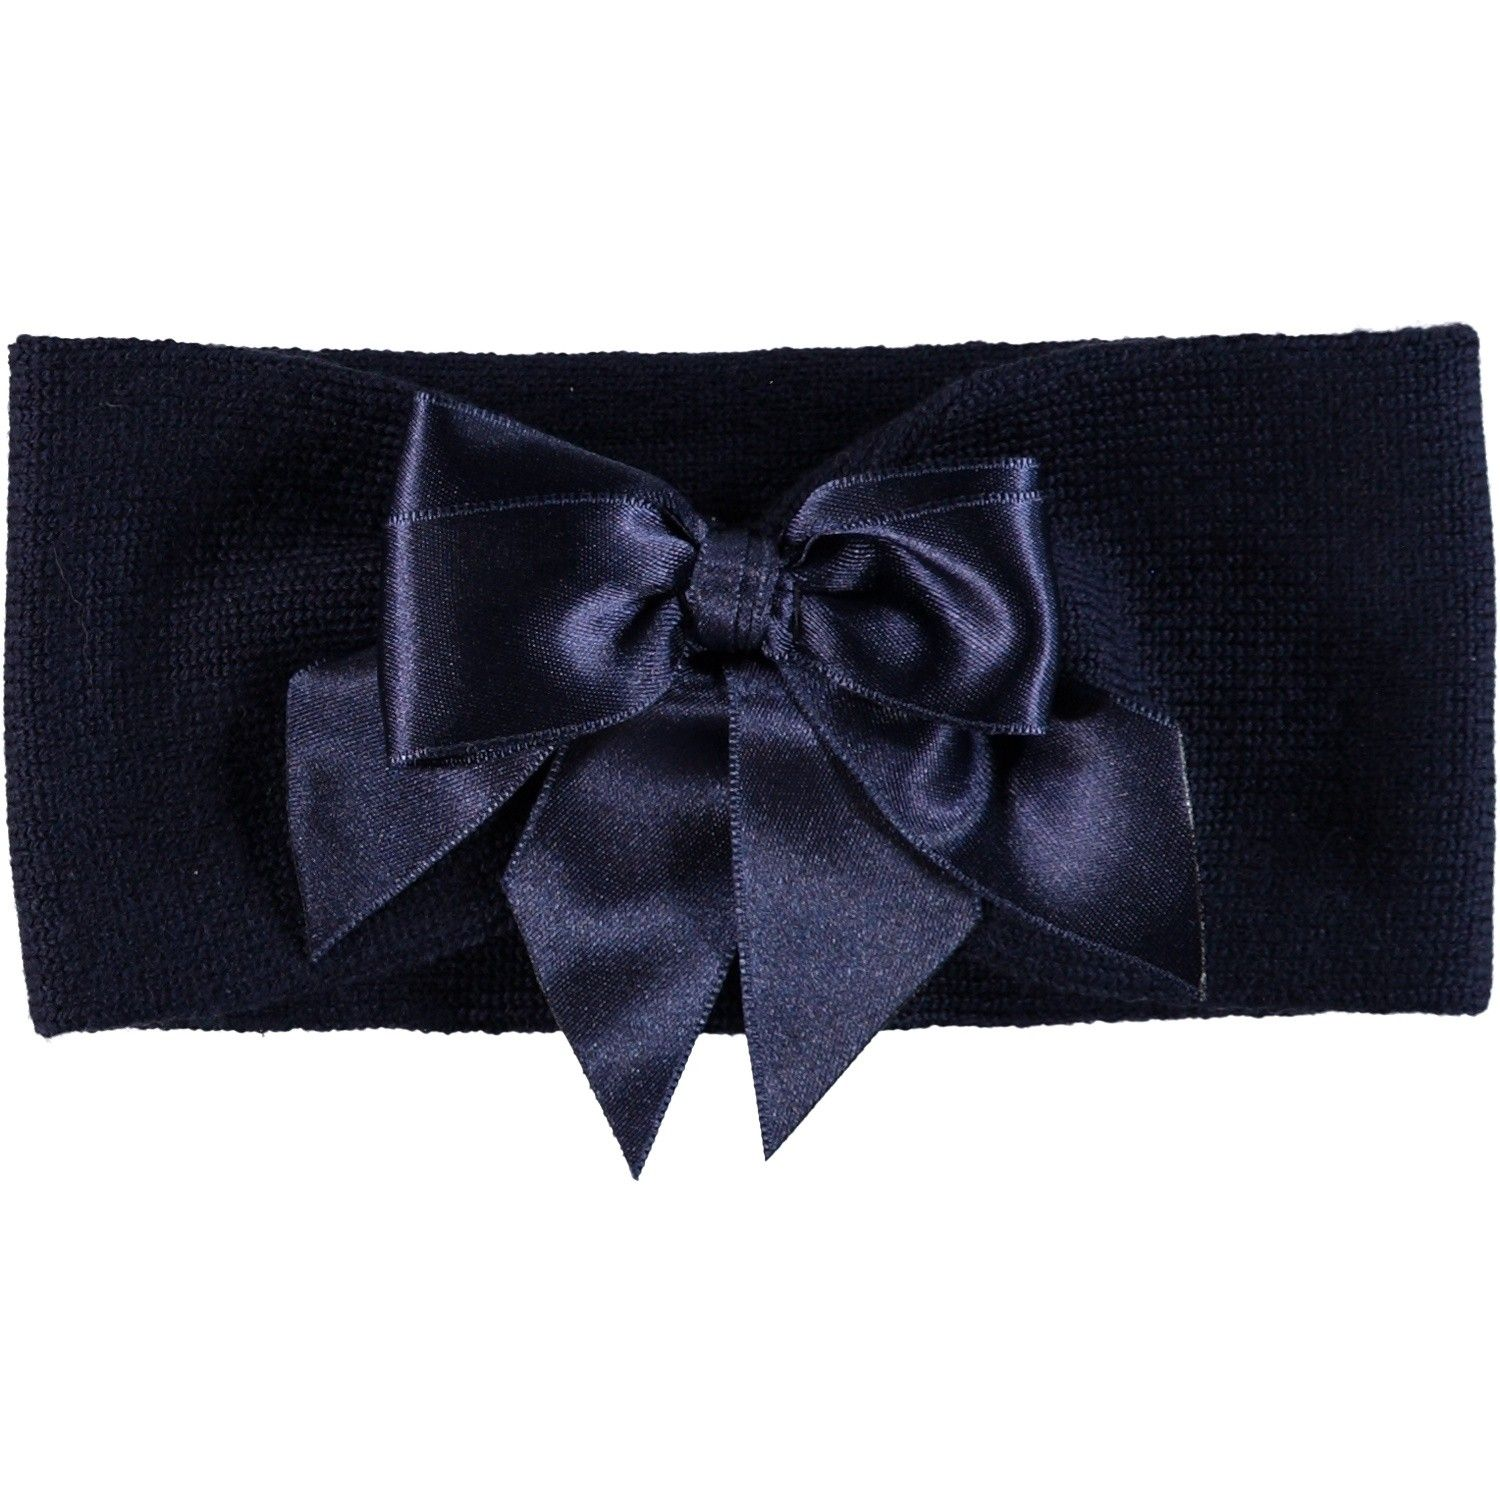 Picture of La Perla 48600 baby accessory navy